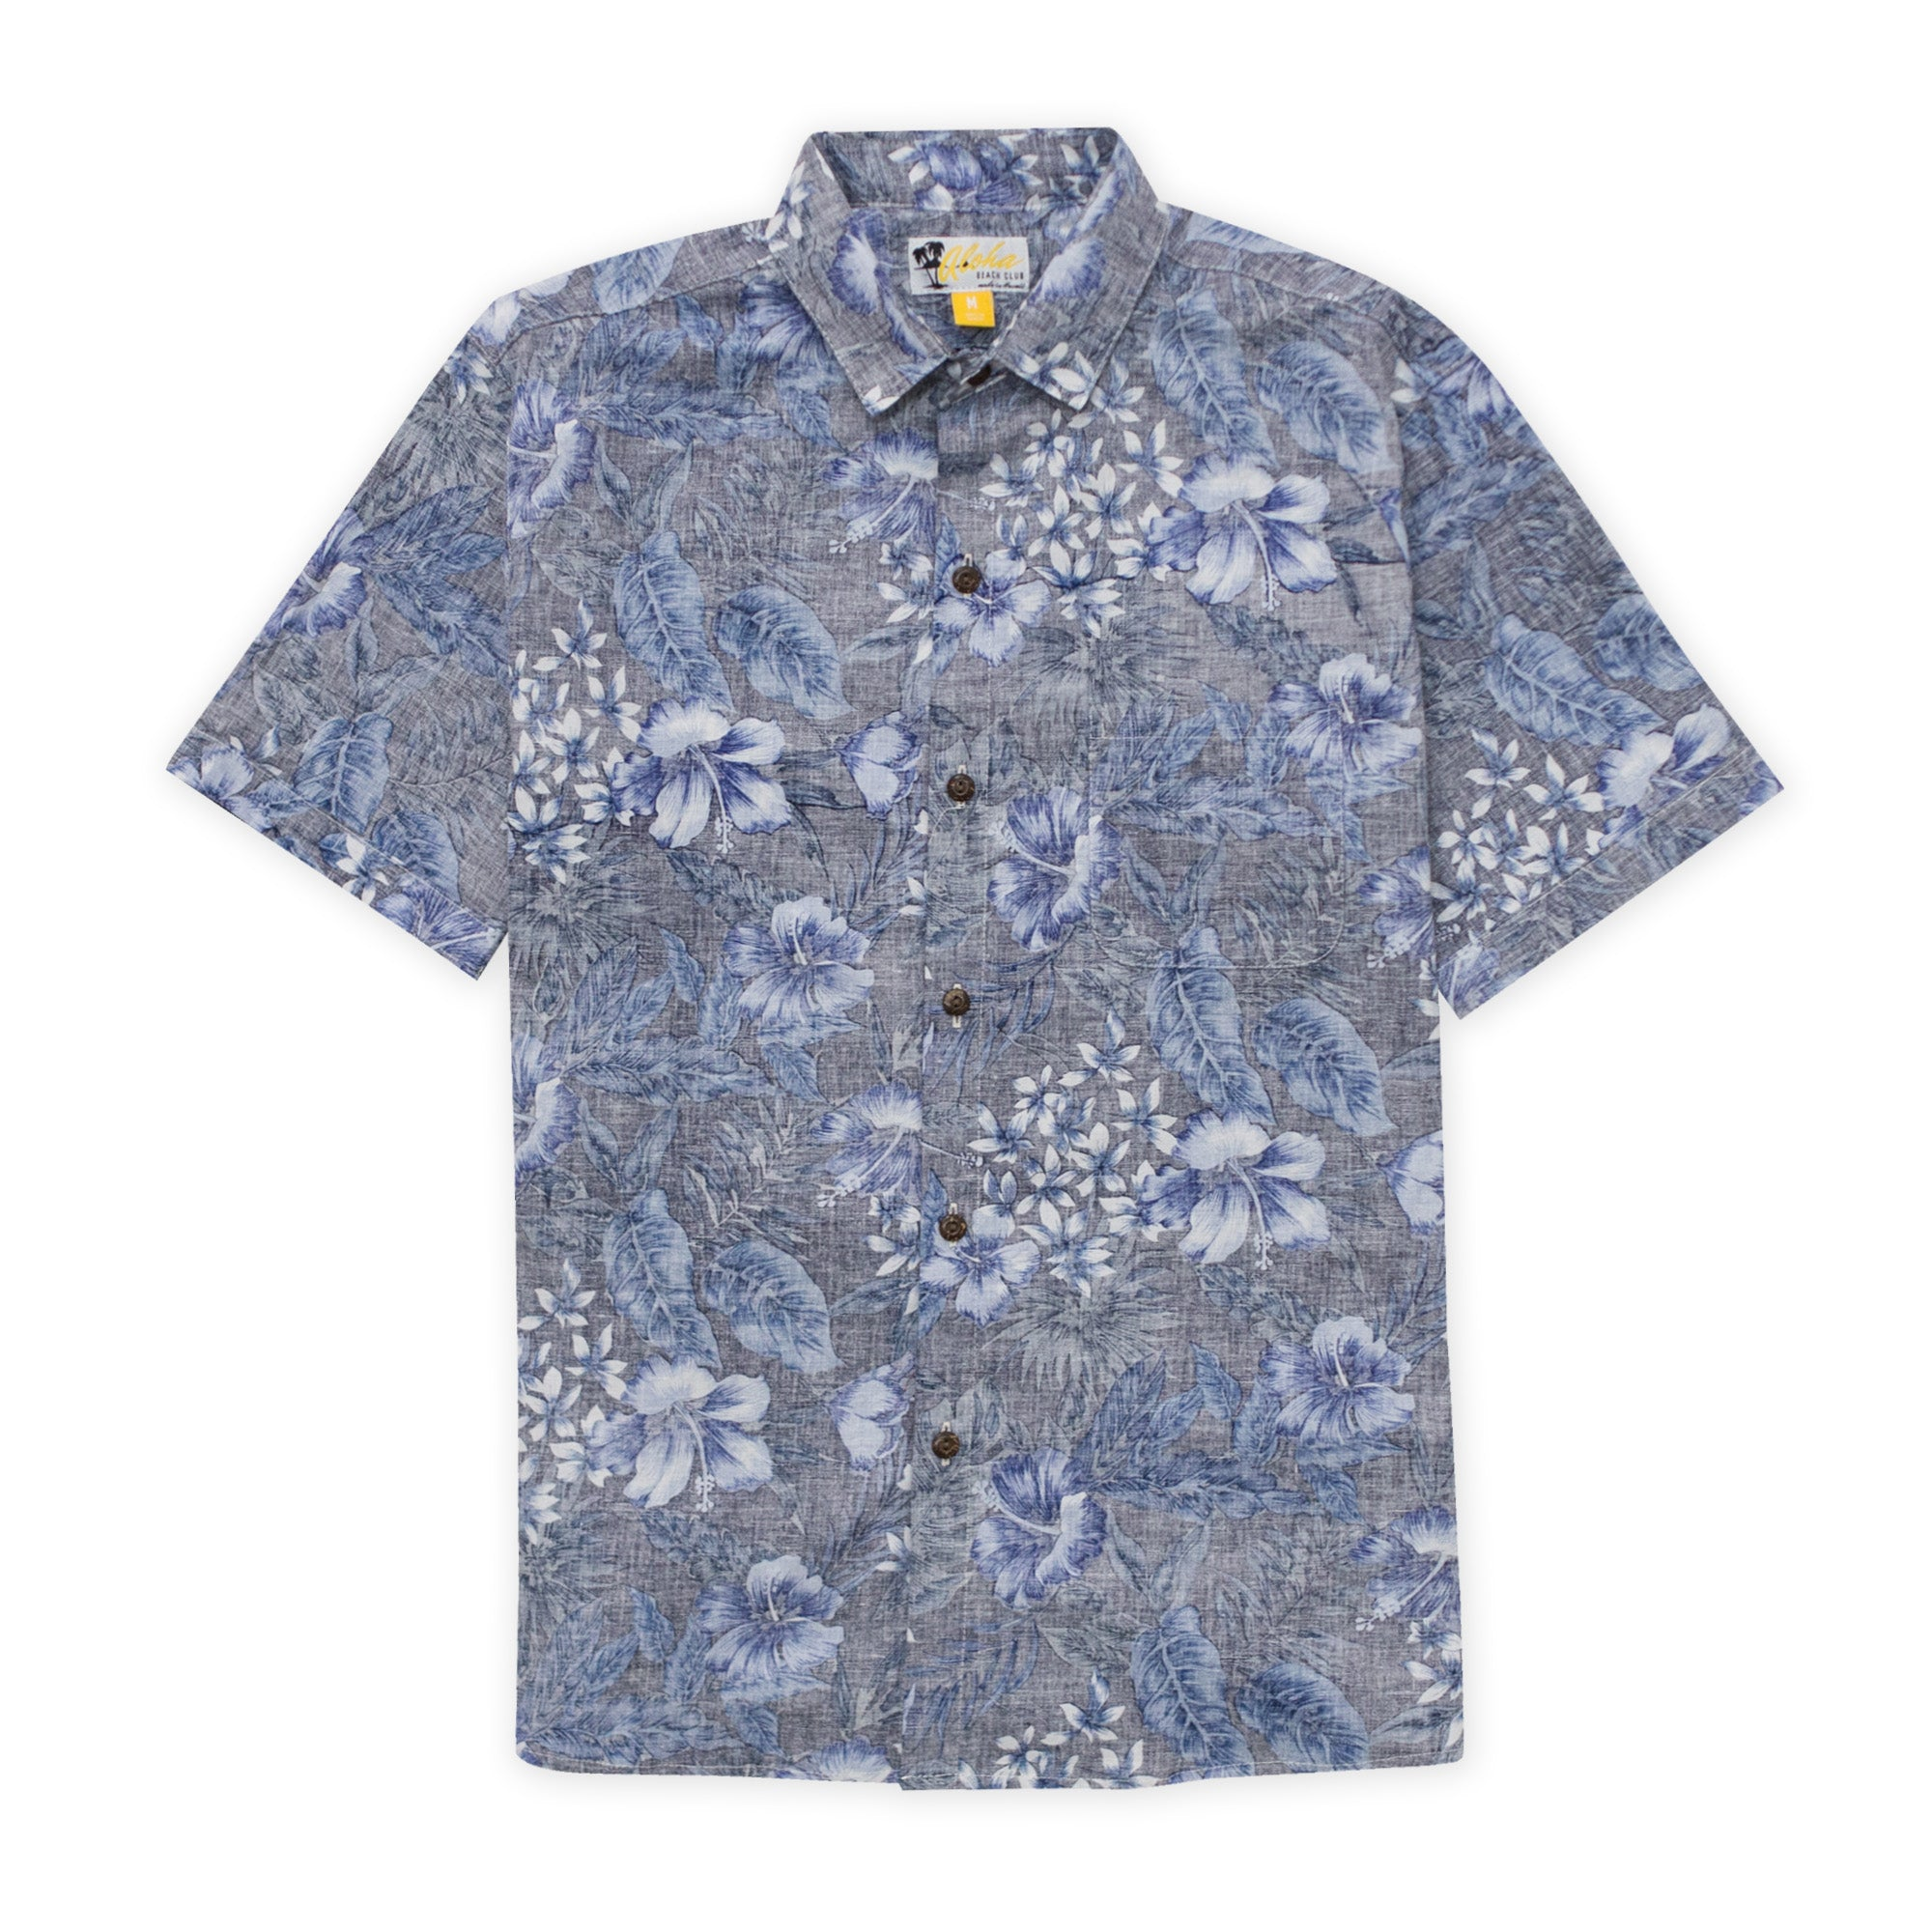 Aloha Beach Club - Nelly Short Sleeve Aloha Shirt Blue - Aloha Beach Club